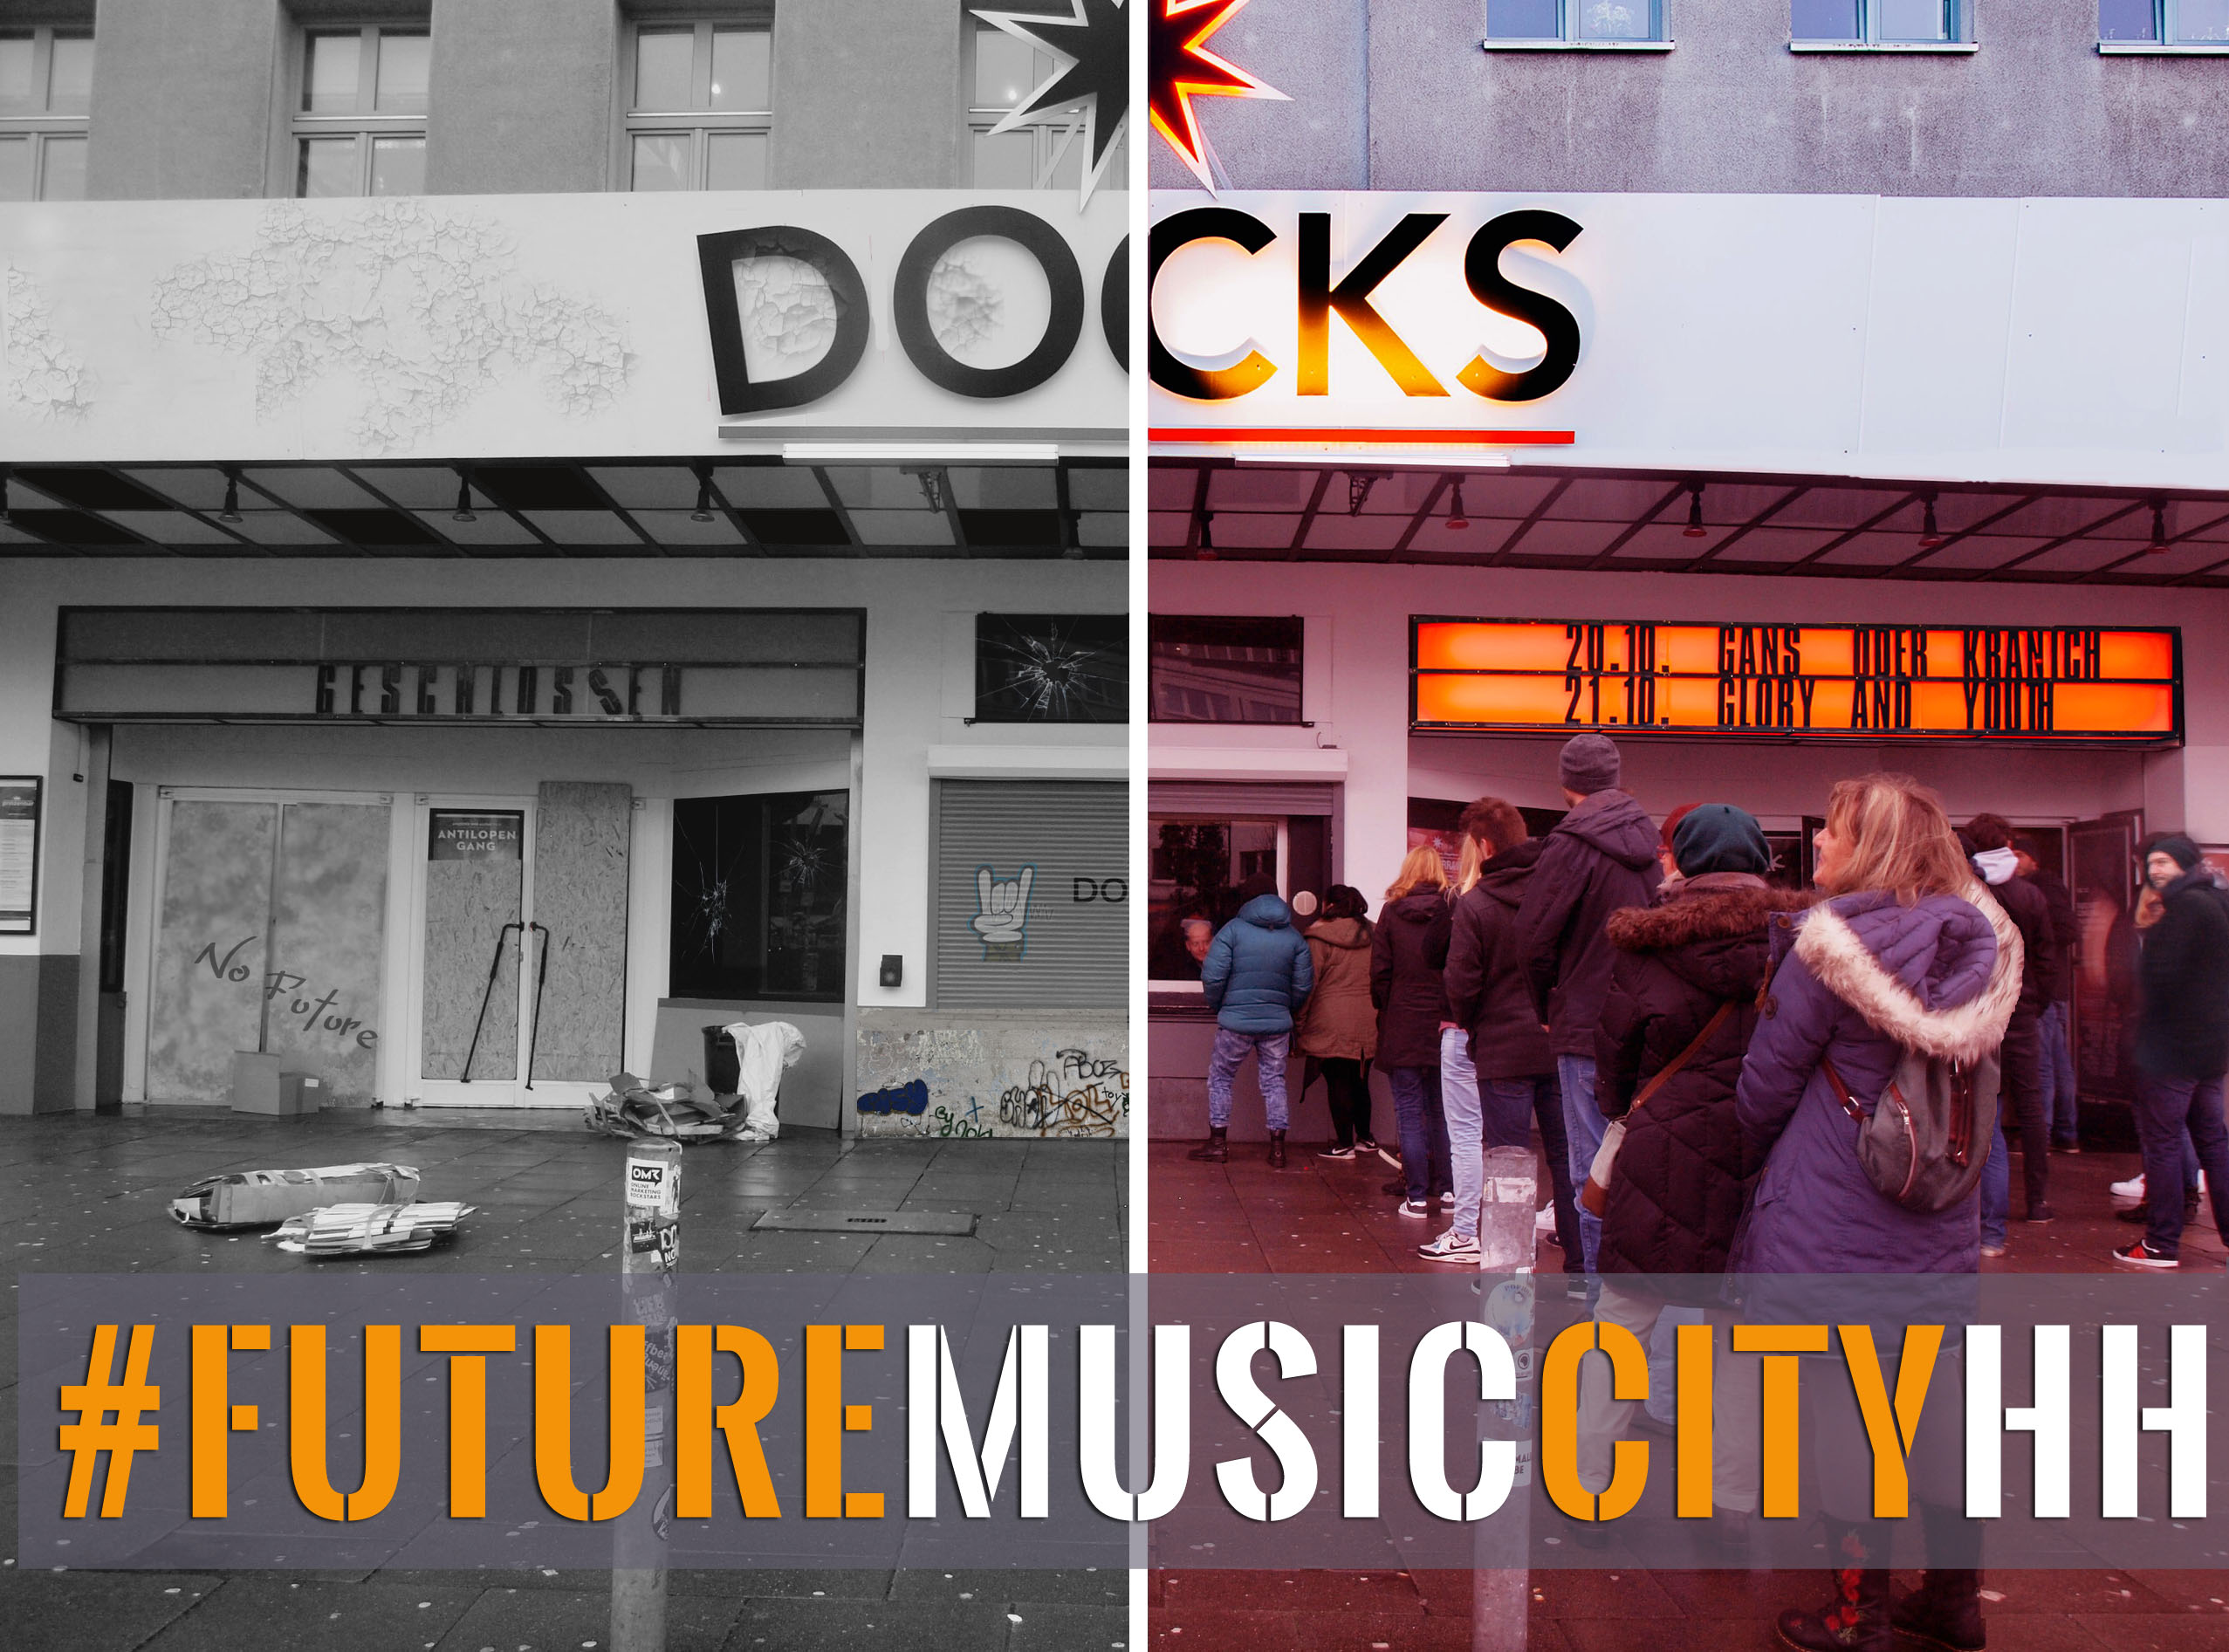 Future Music City HH / #futuremusiccityhh